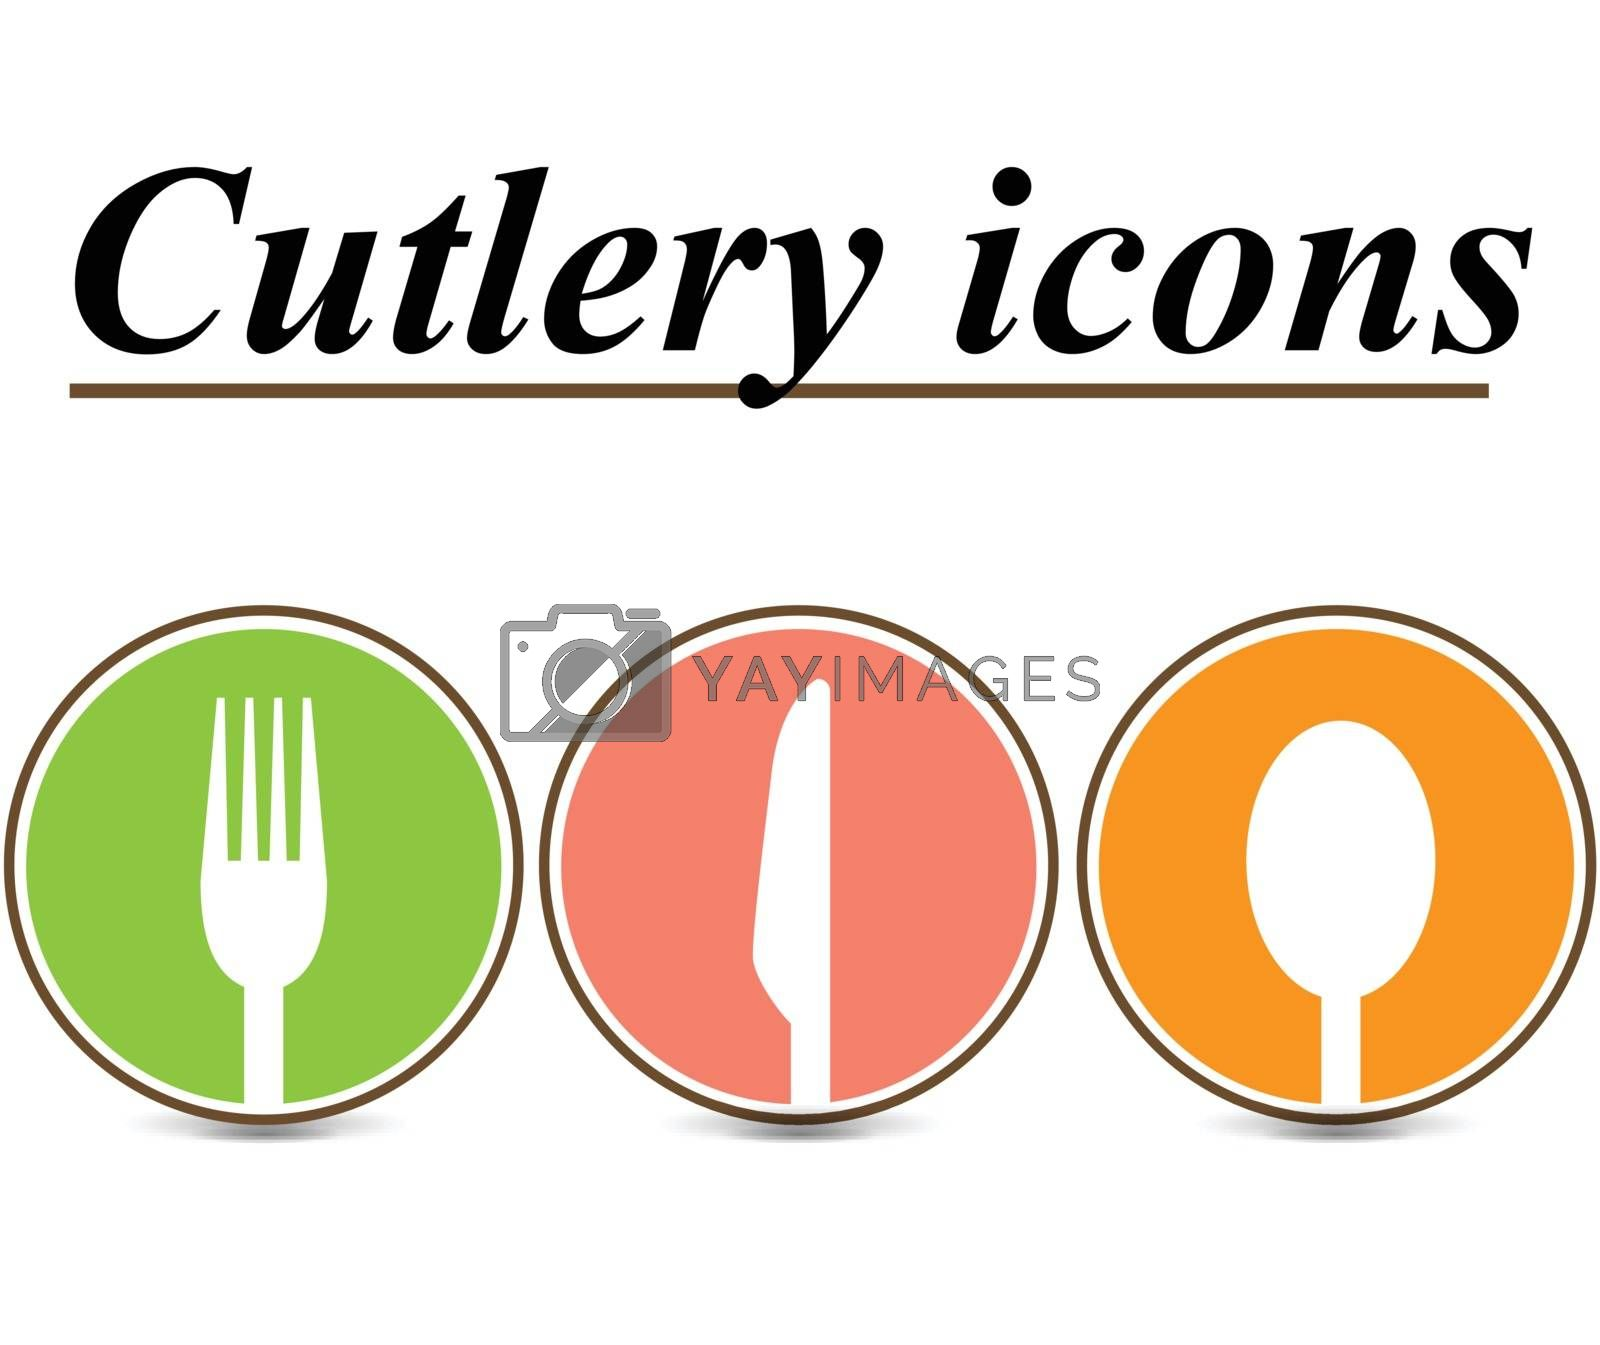 illustration of three cutlery icons on white background